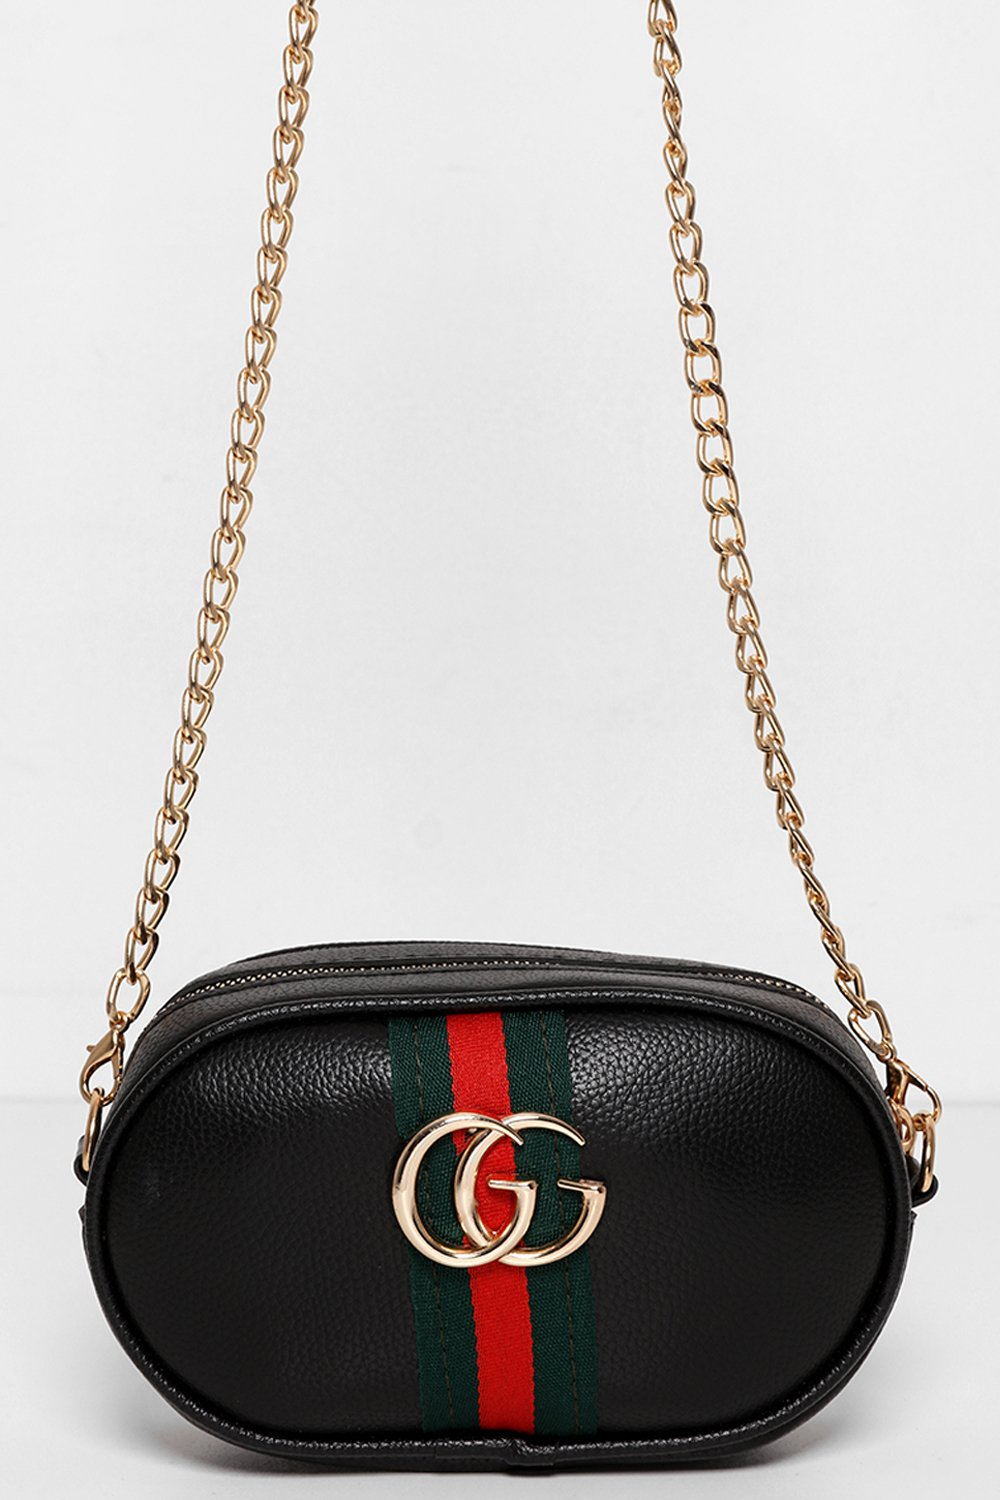 Stripe Detail Black Mini Bumbag Shoulder Bag